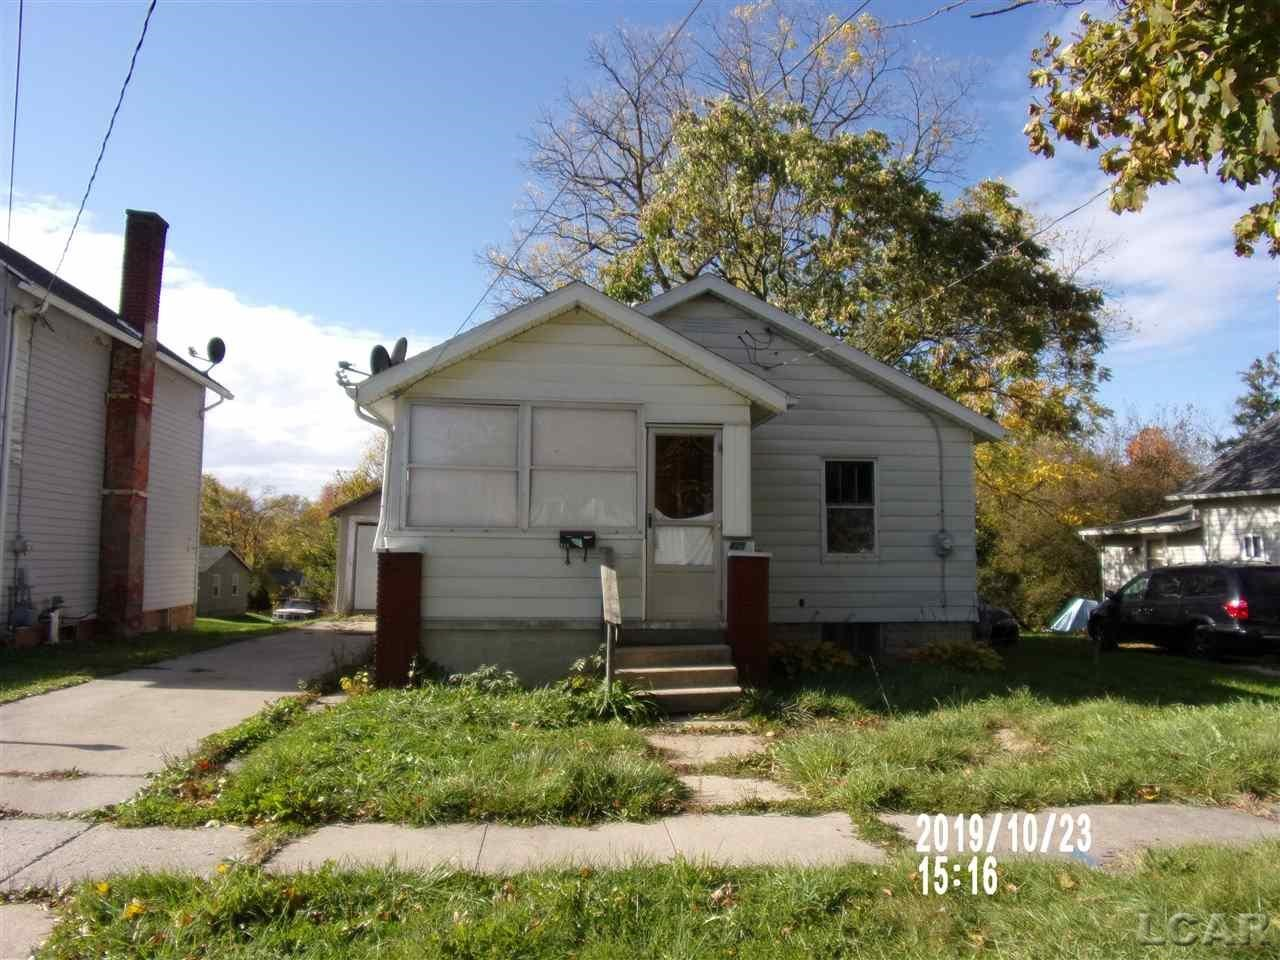 825 Ormsby, Adrian (46025)